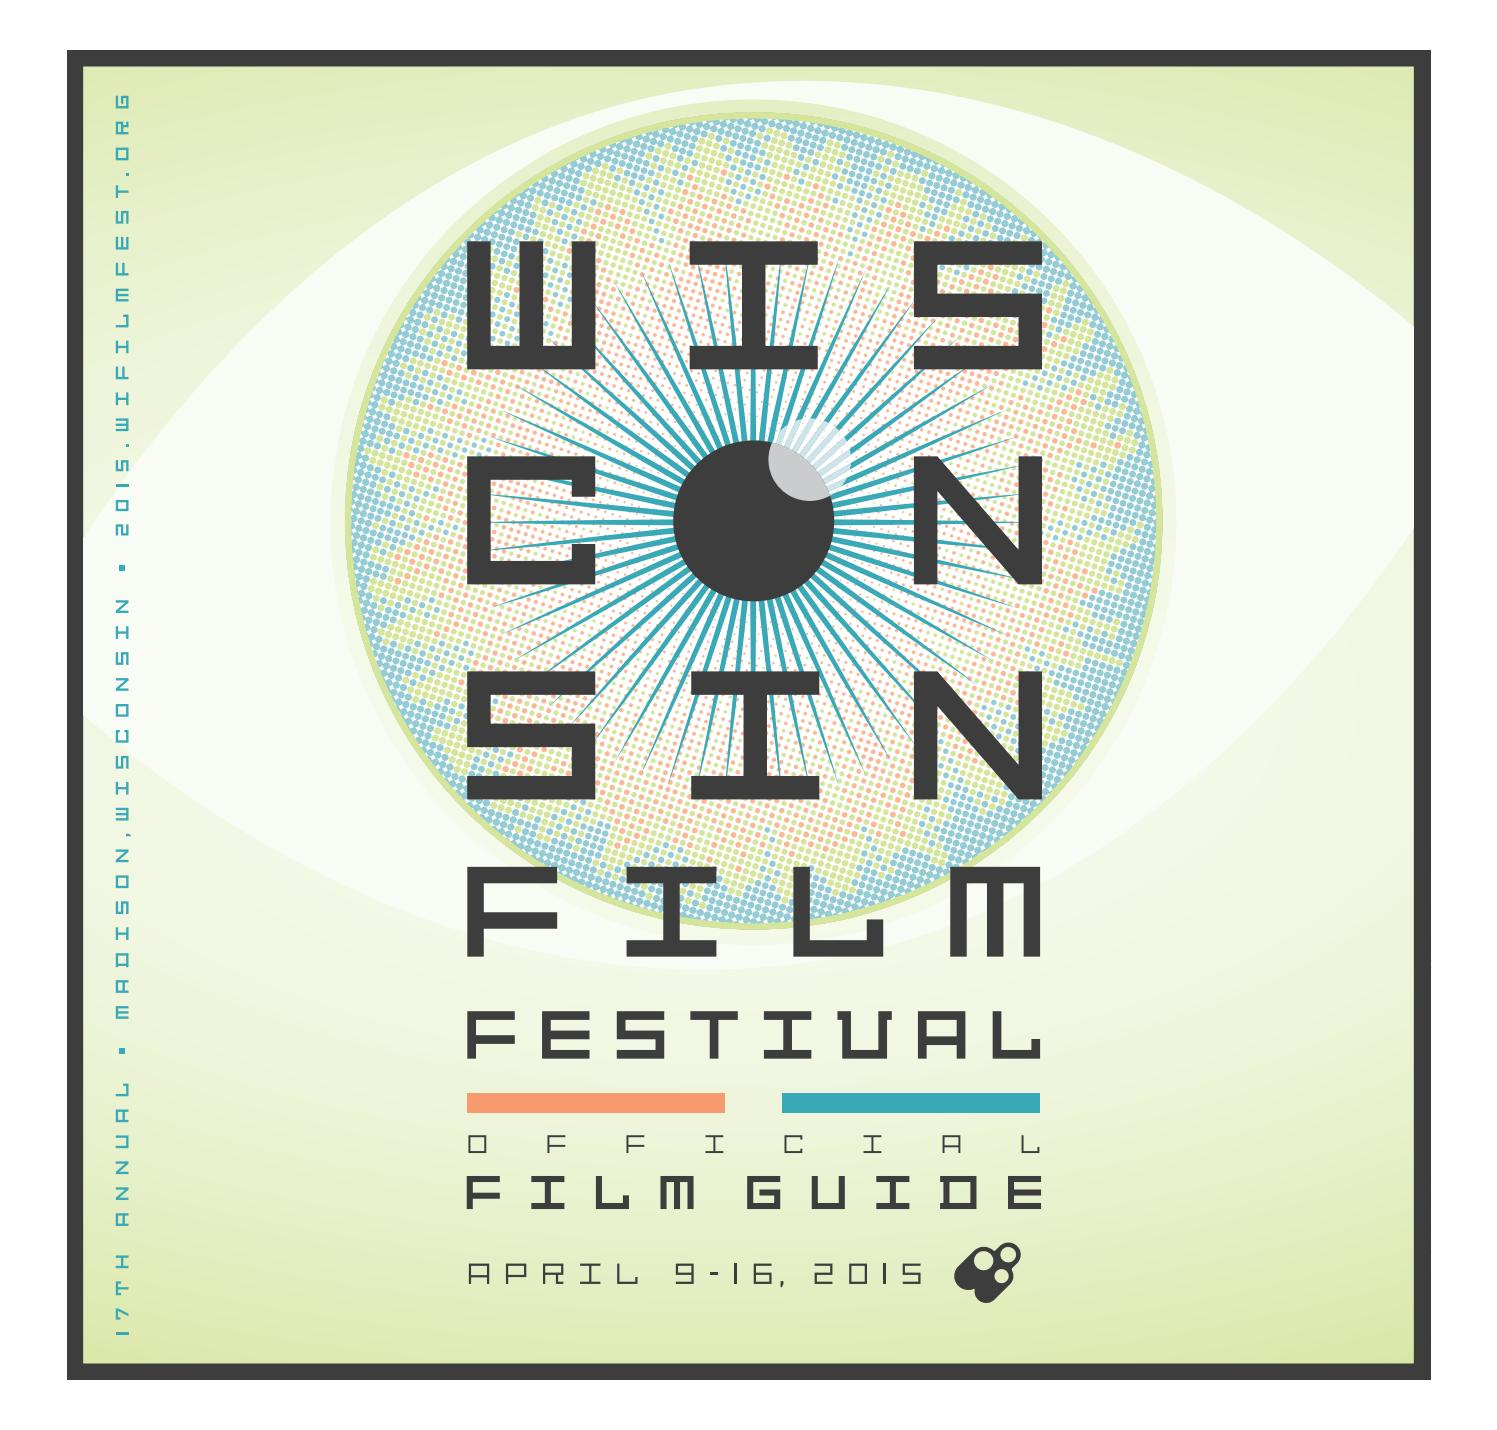 2015 Wisconsin Festival Guide by UW Madison Division of